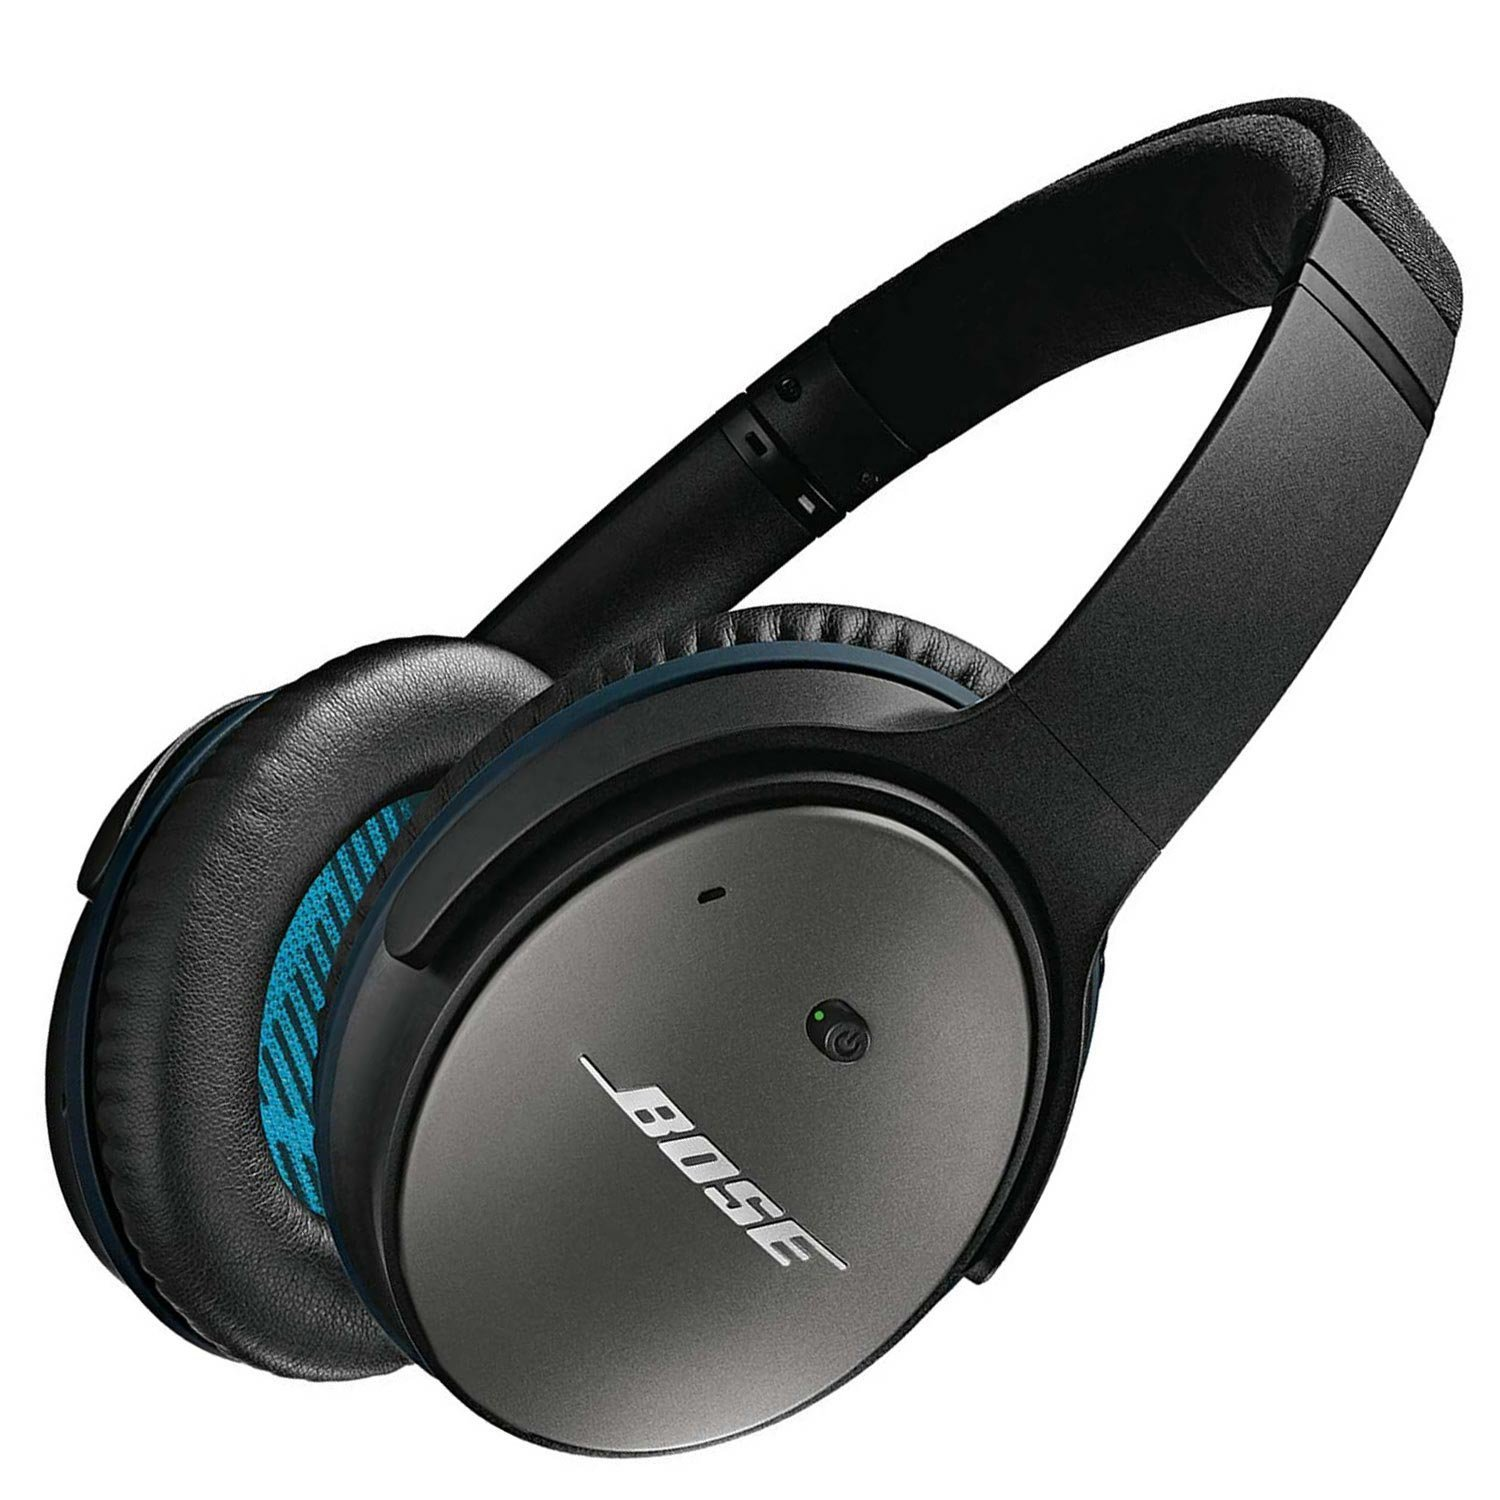 Bose noise cancelling headphones remote work peace digital nomad